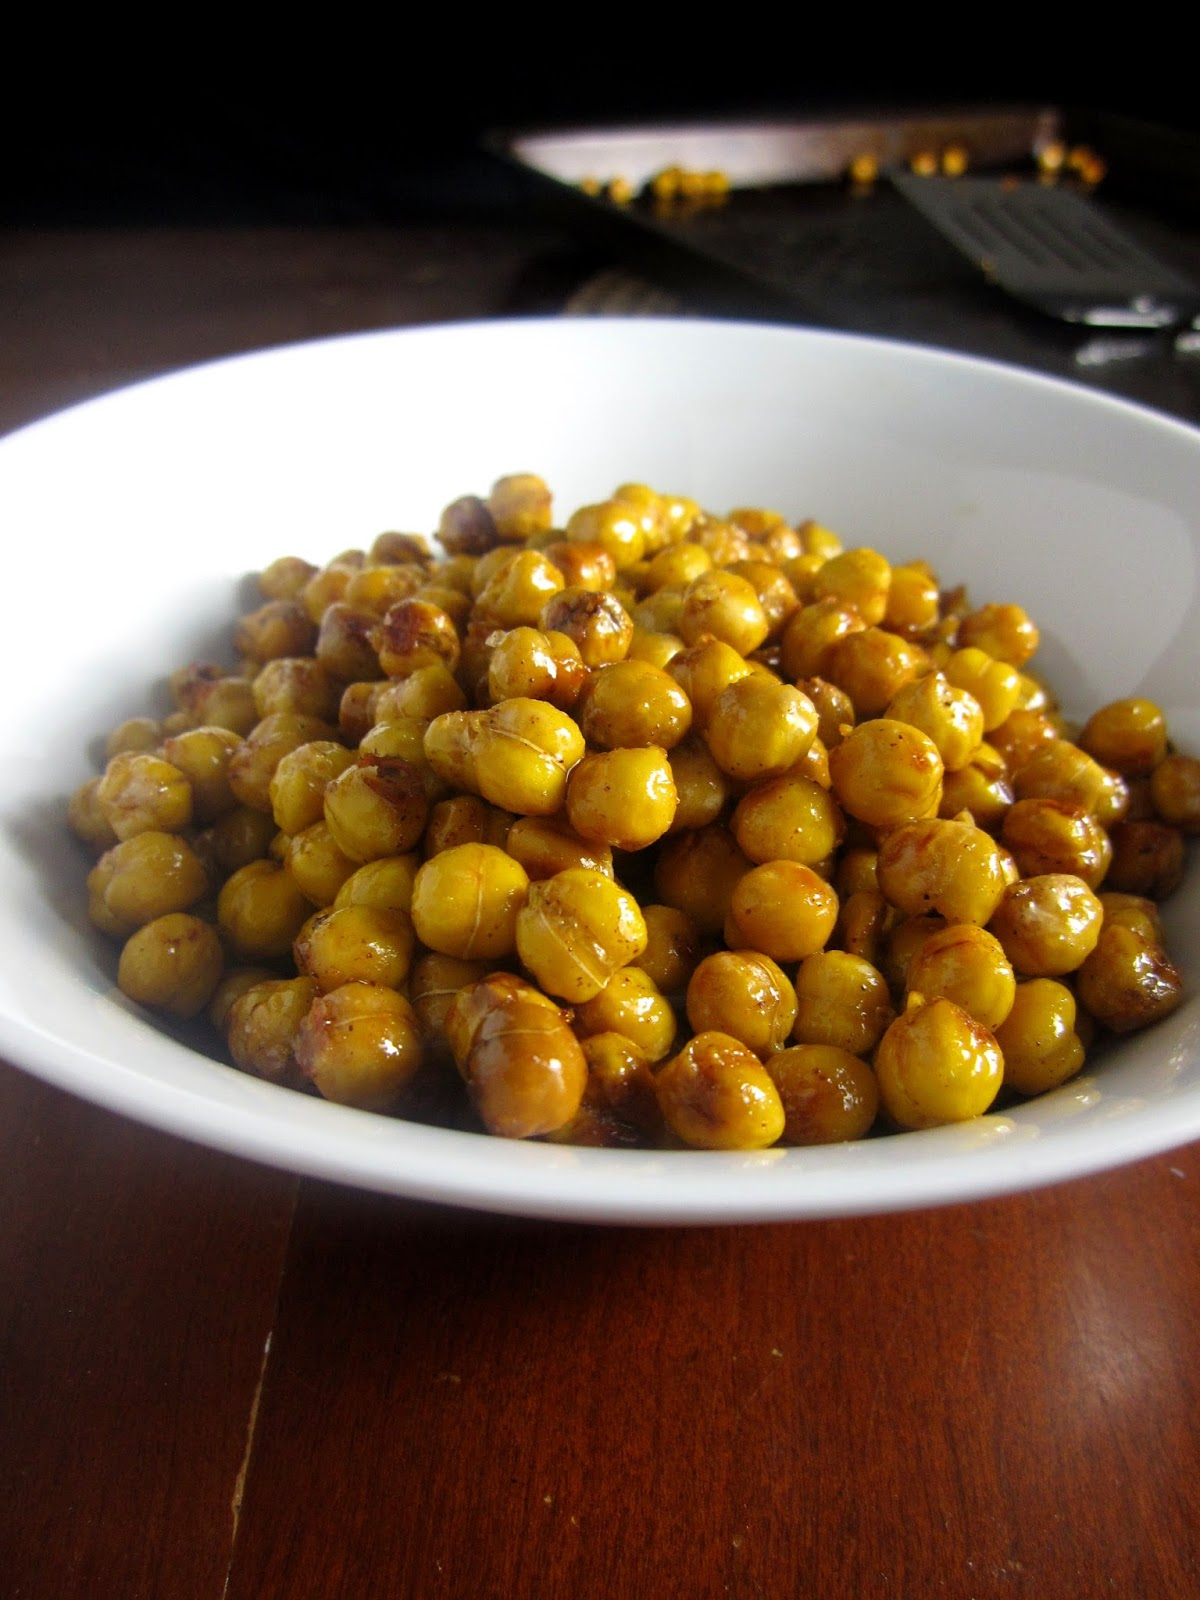 Baked crispy chickpeas topped coated in honey and cinnamon. The ...